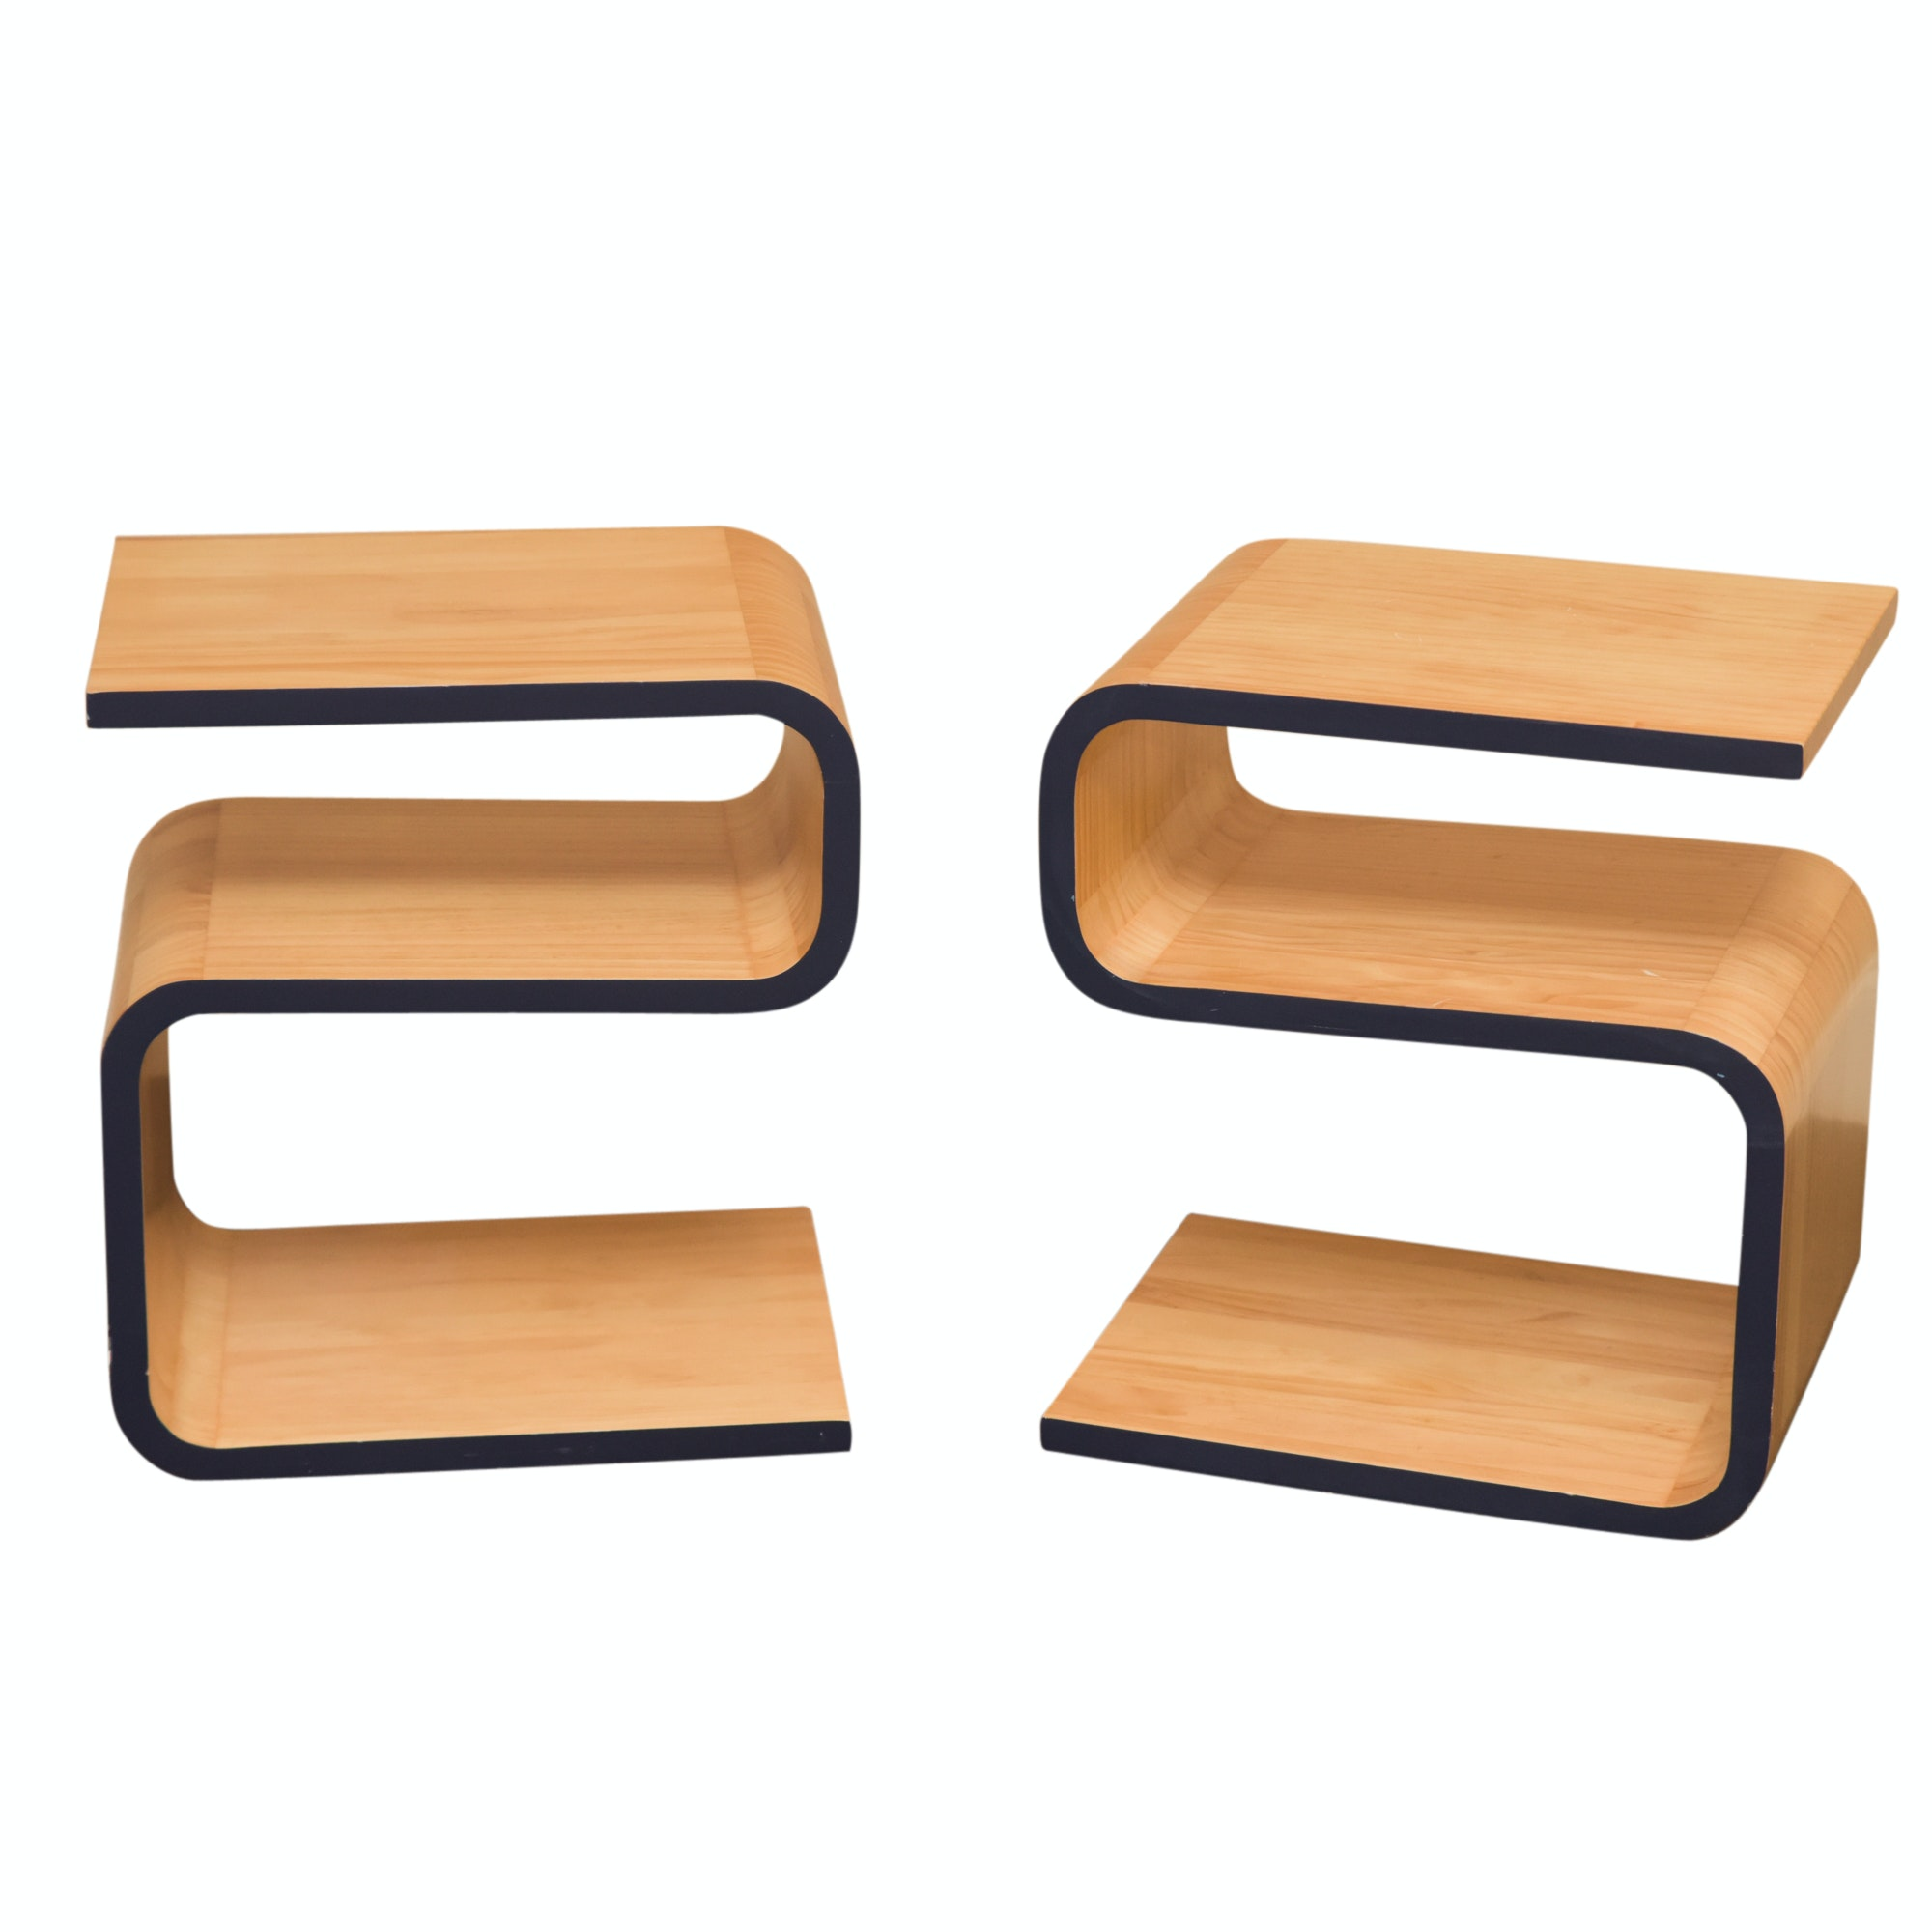 "Contemporary Wood Grain Laminate ""S"" Side Tables by Pottery Barn Teen"